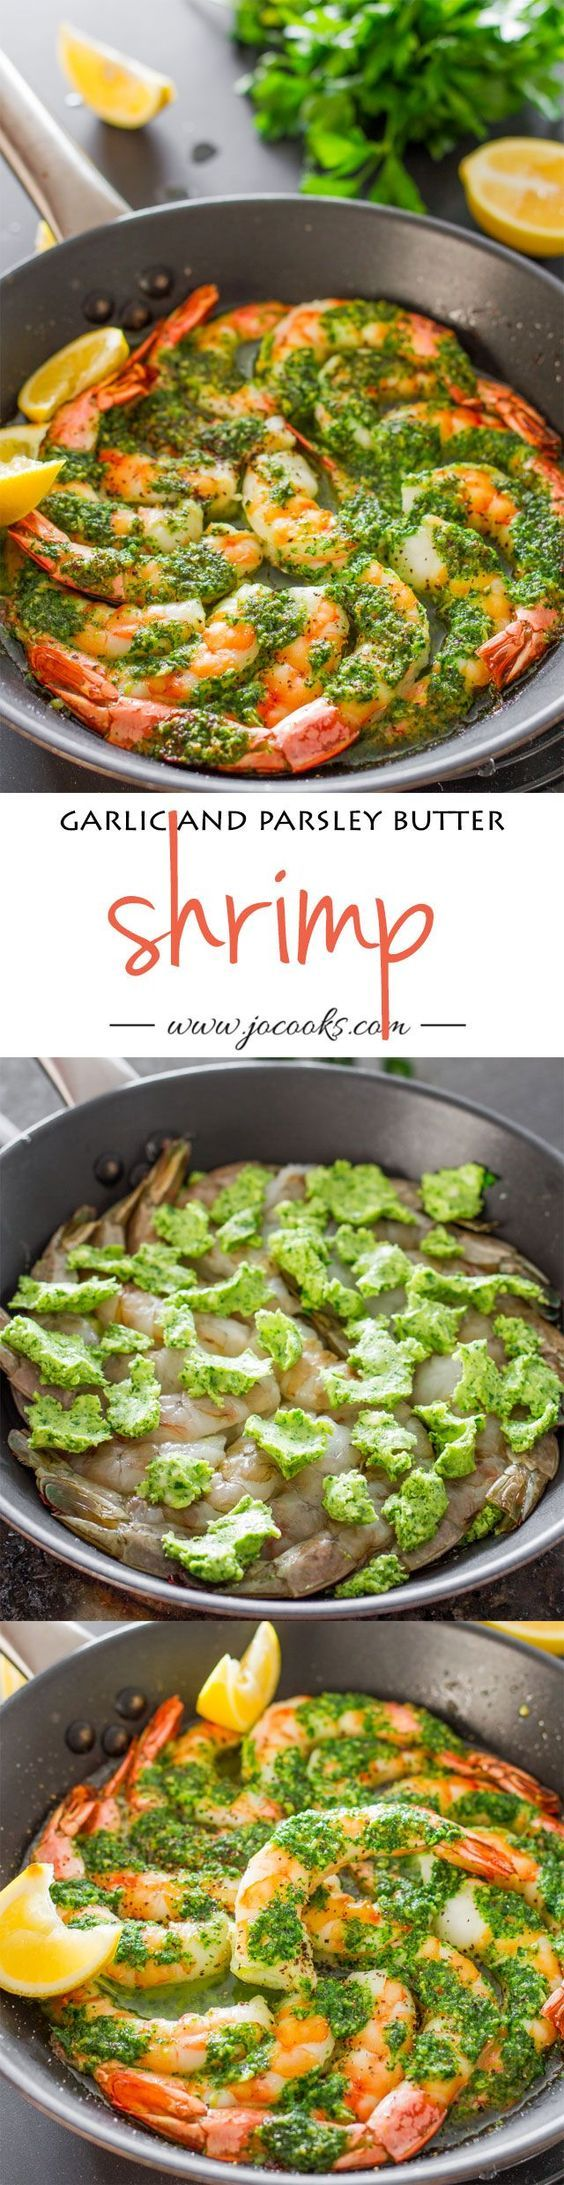 Garlic and Parsley Butter Shrimp: